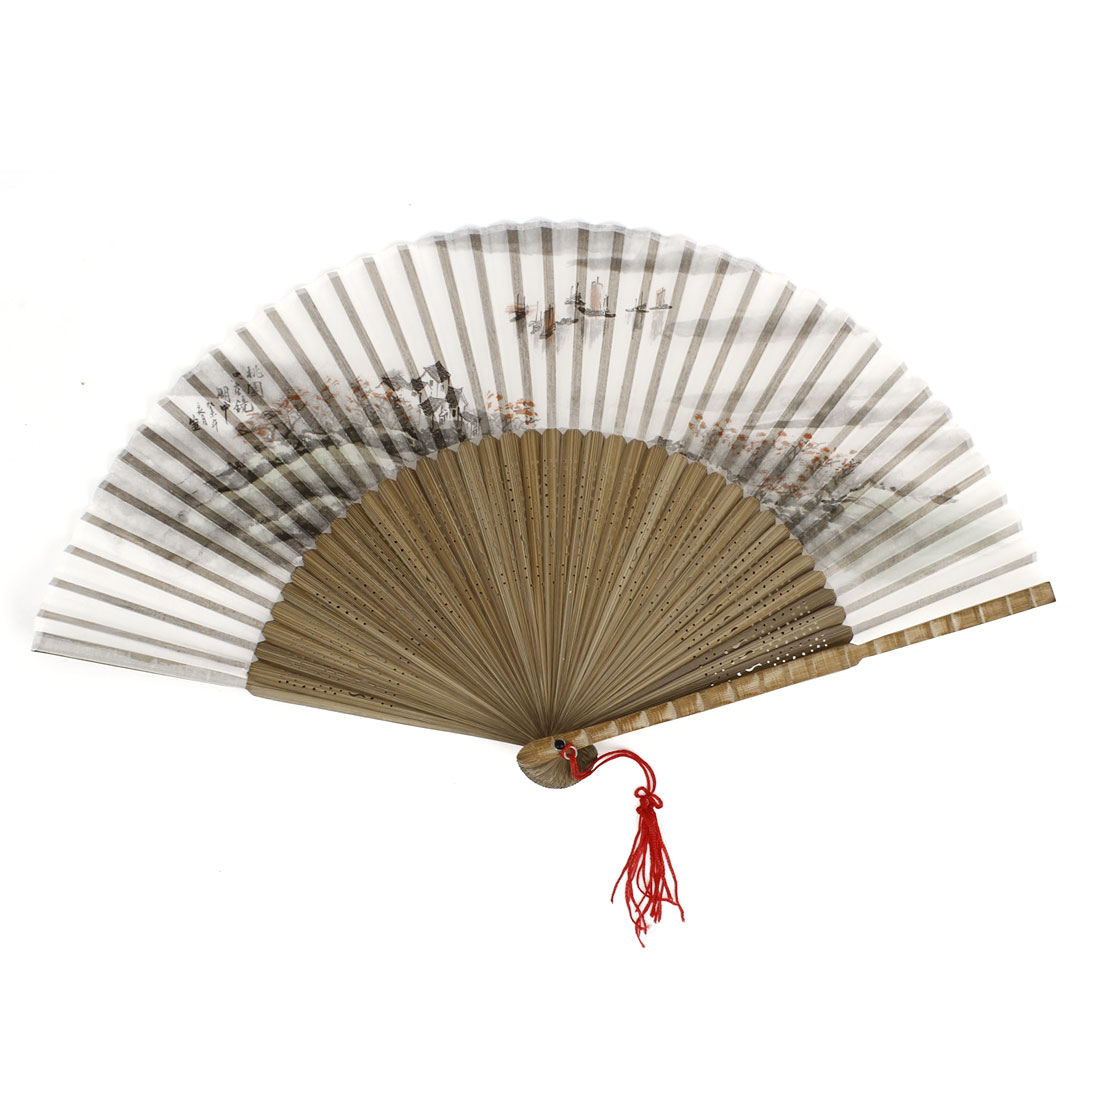 Tree Boat Pattern Tassels Decor Bamboo Ribs Folding Hand Fan Gray